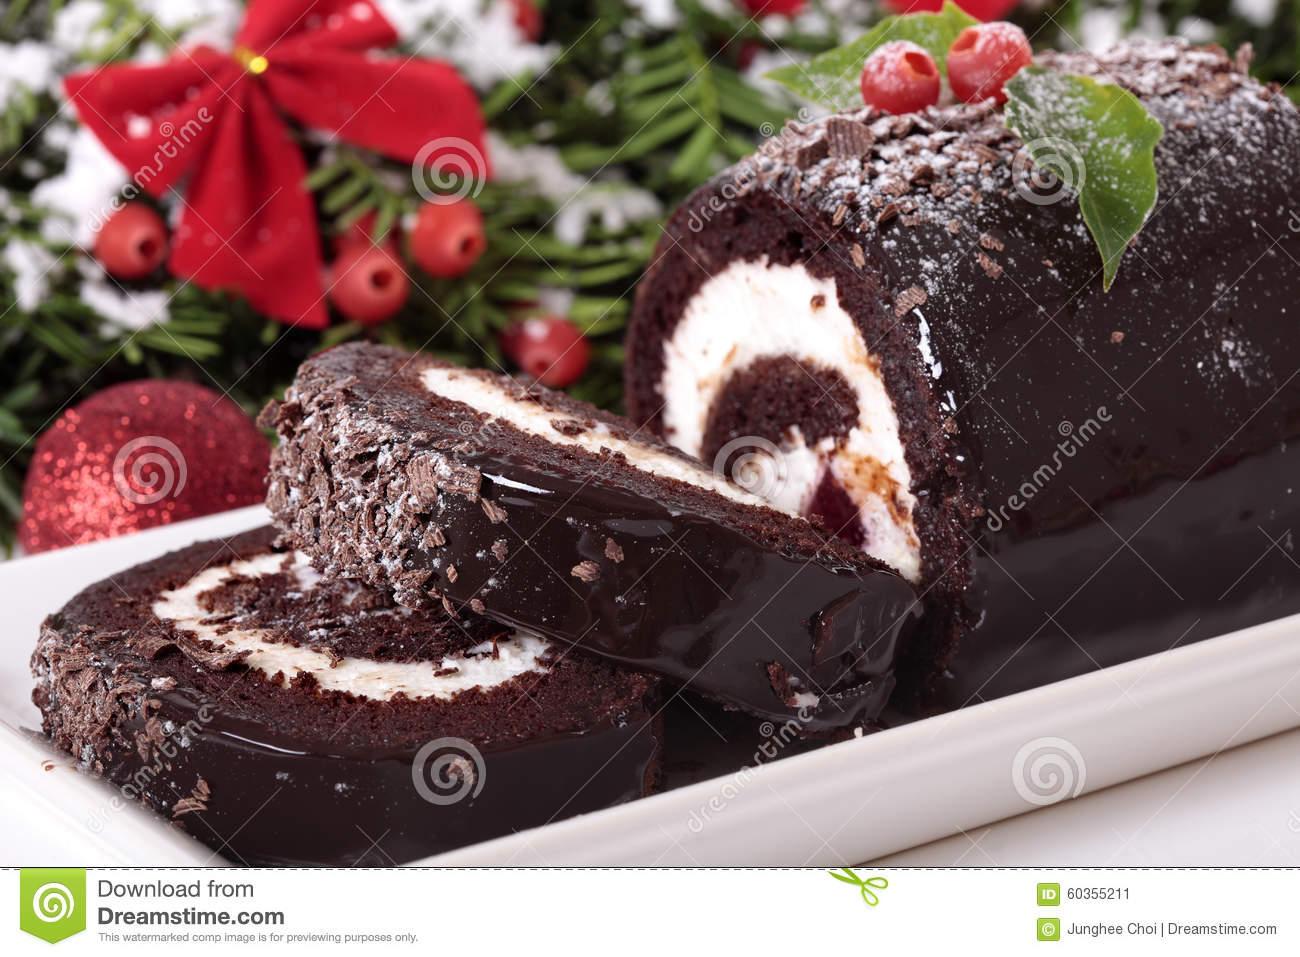 How to make a christmas yule log decoration - Royalty Free Stock Photo Download Slice Of Christmas Yule Log